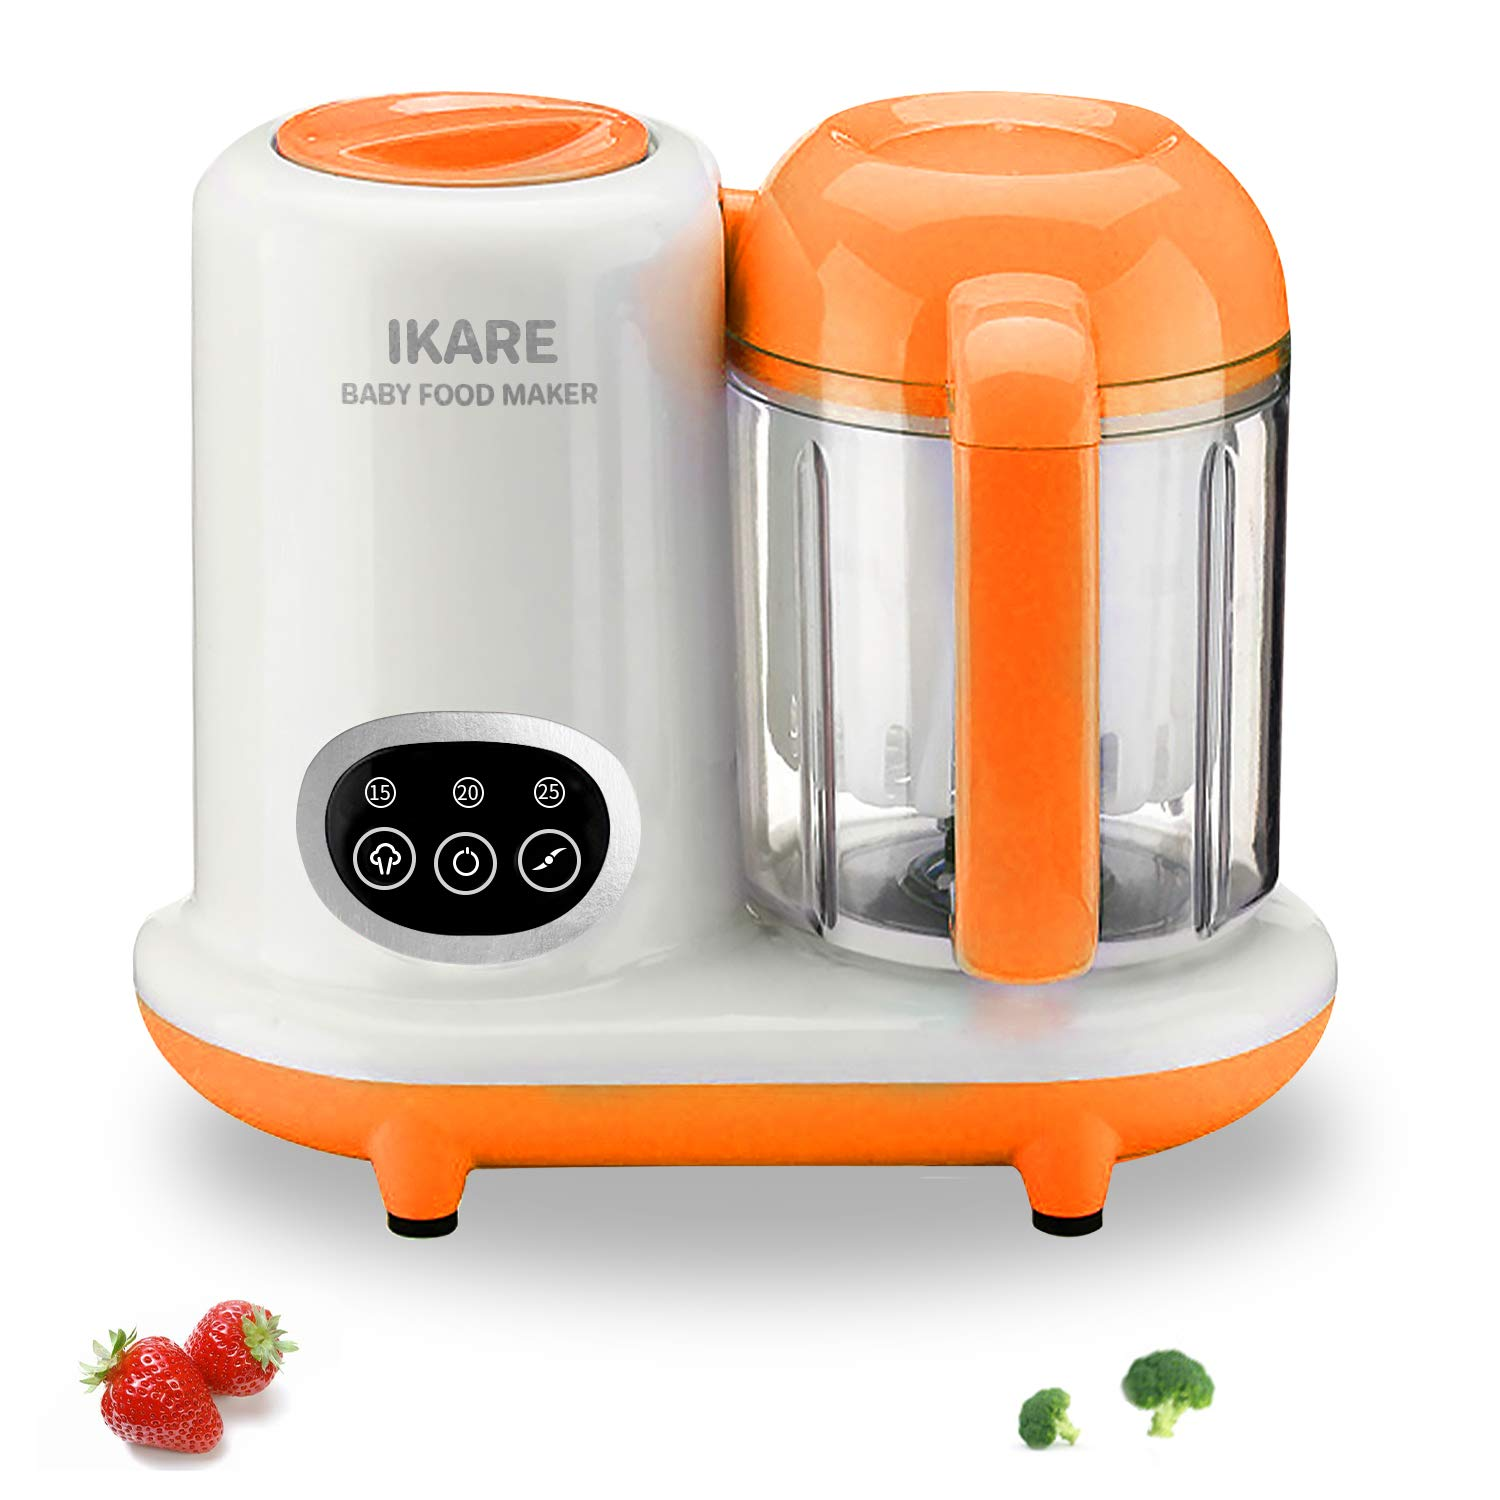 Baby Food Maker | Baby Food Processor | Puree Blender Multi-Function Steamer Grinder Blender, Touch Control Panel, Auto Shut-Off, 25 Oz Tritan Stirring Cup, Cook & Blend Homemade Baby Food in Minutes